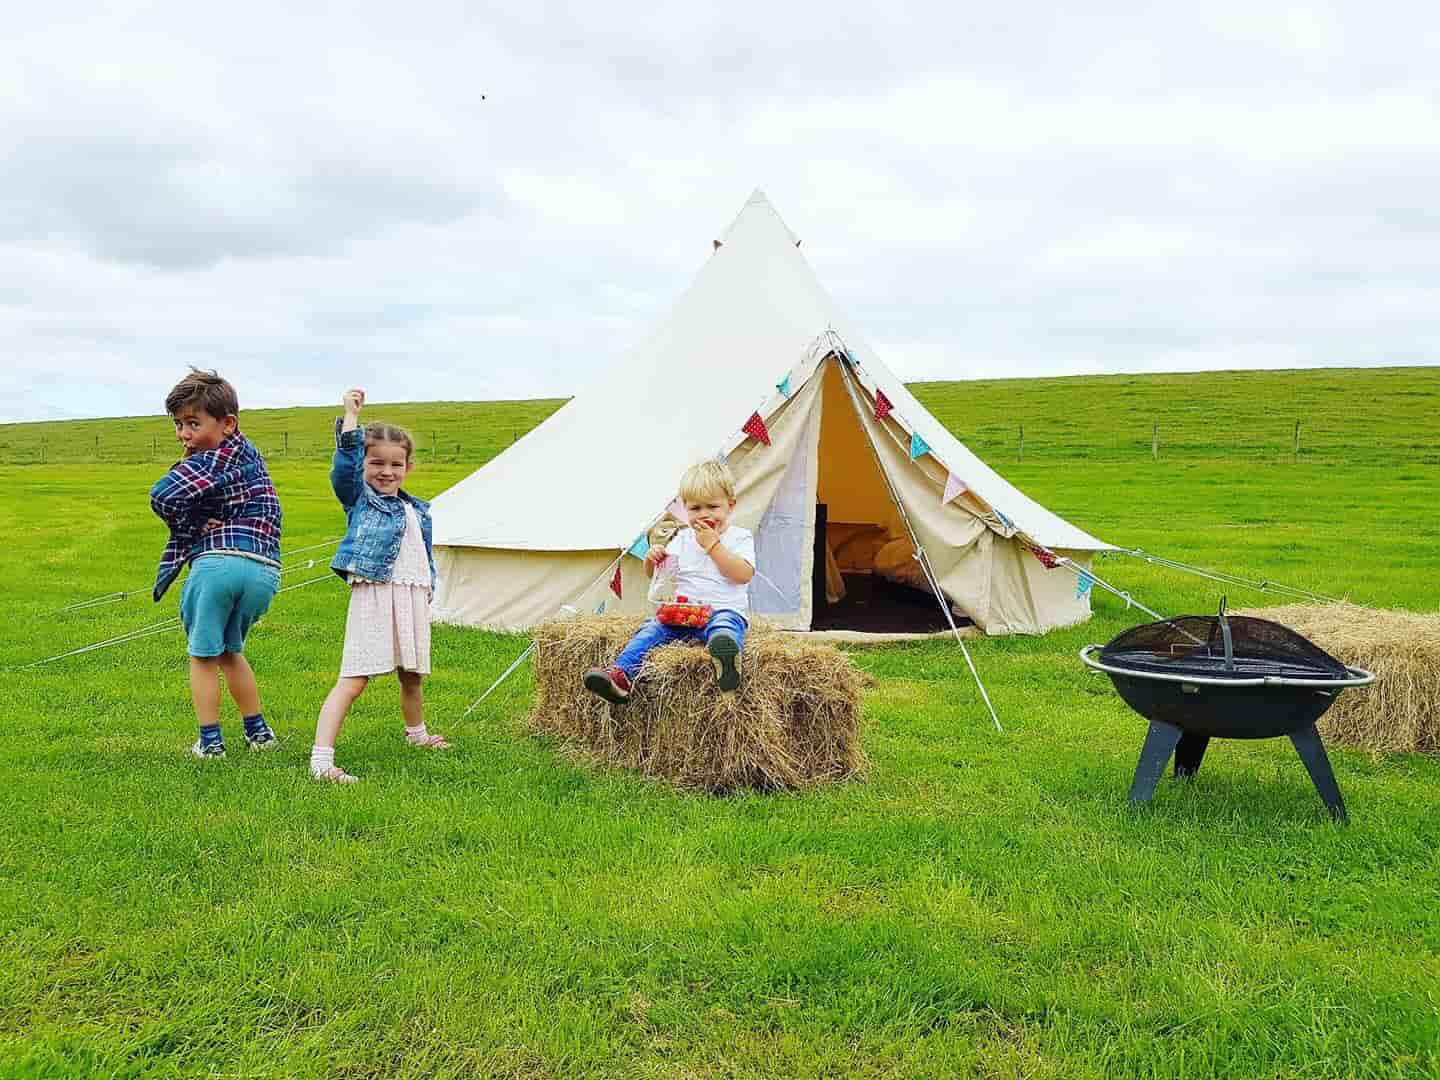 Kids enjoying their teepee during staycation at Dewflock Farm campsite, Dorset.